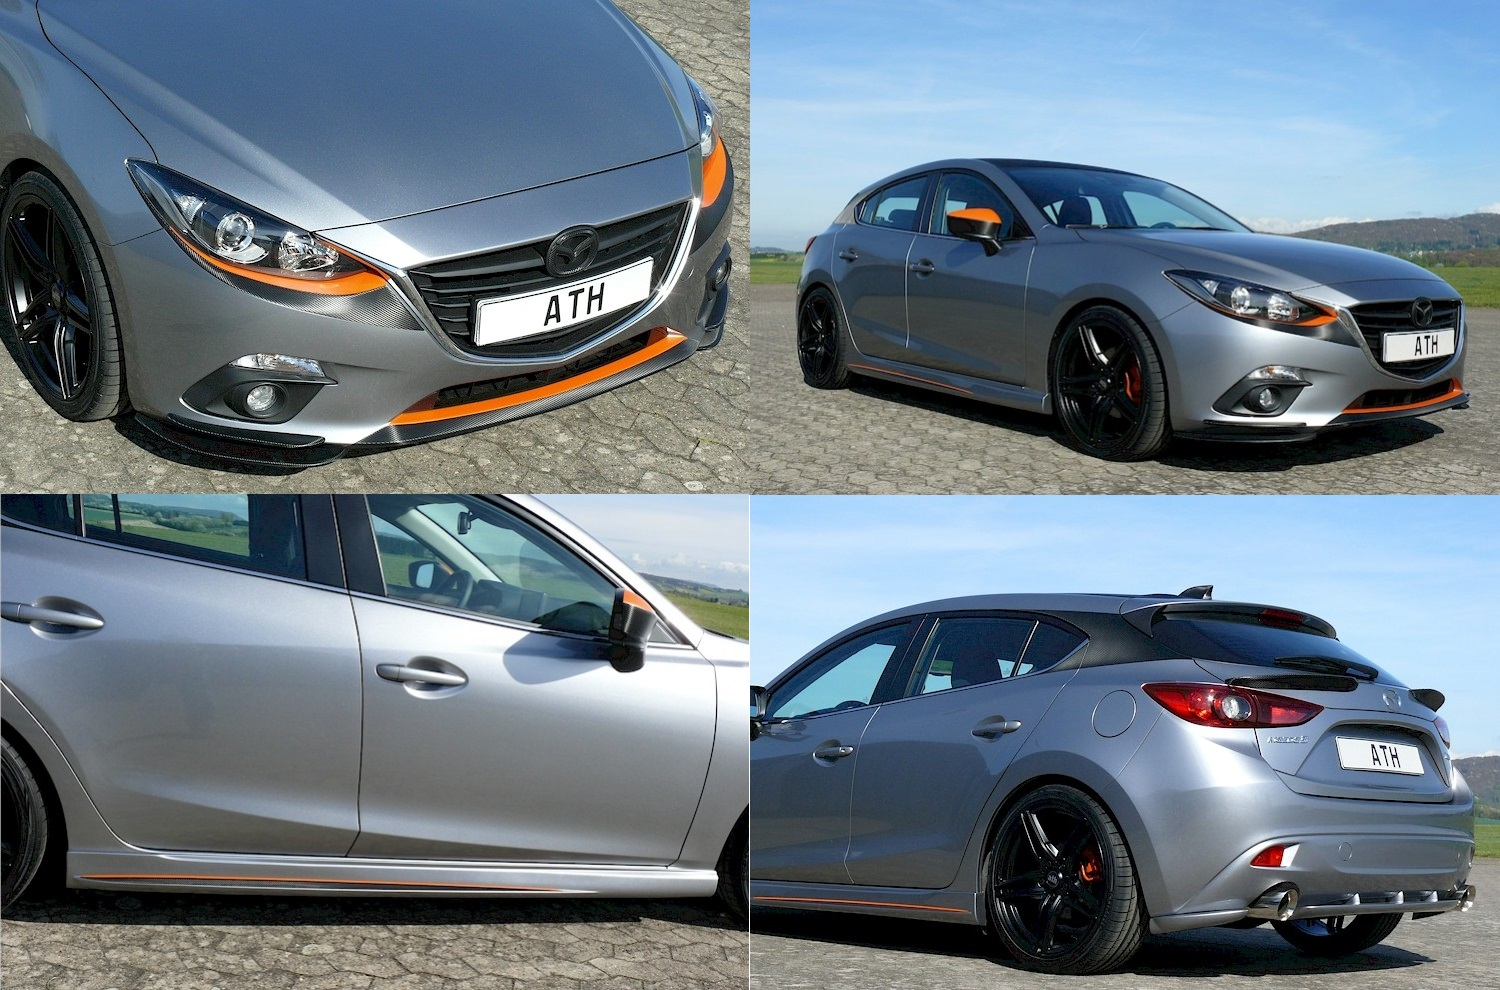 2004 to 2016 mazda 3 forum and mazdaspeed 3 forums view single 2004 to 2016 mazda 3 forum and mazdaspeed 3 forums view single post body kits aero kits body accessories list as seen on mazda3s publicscrutiny Images